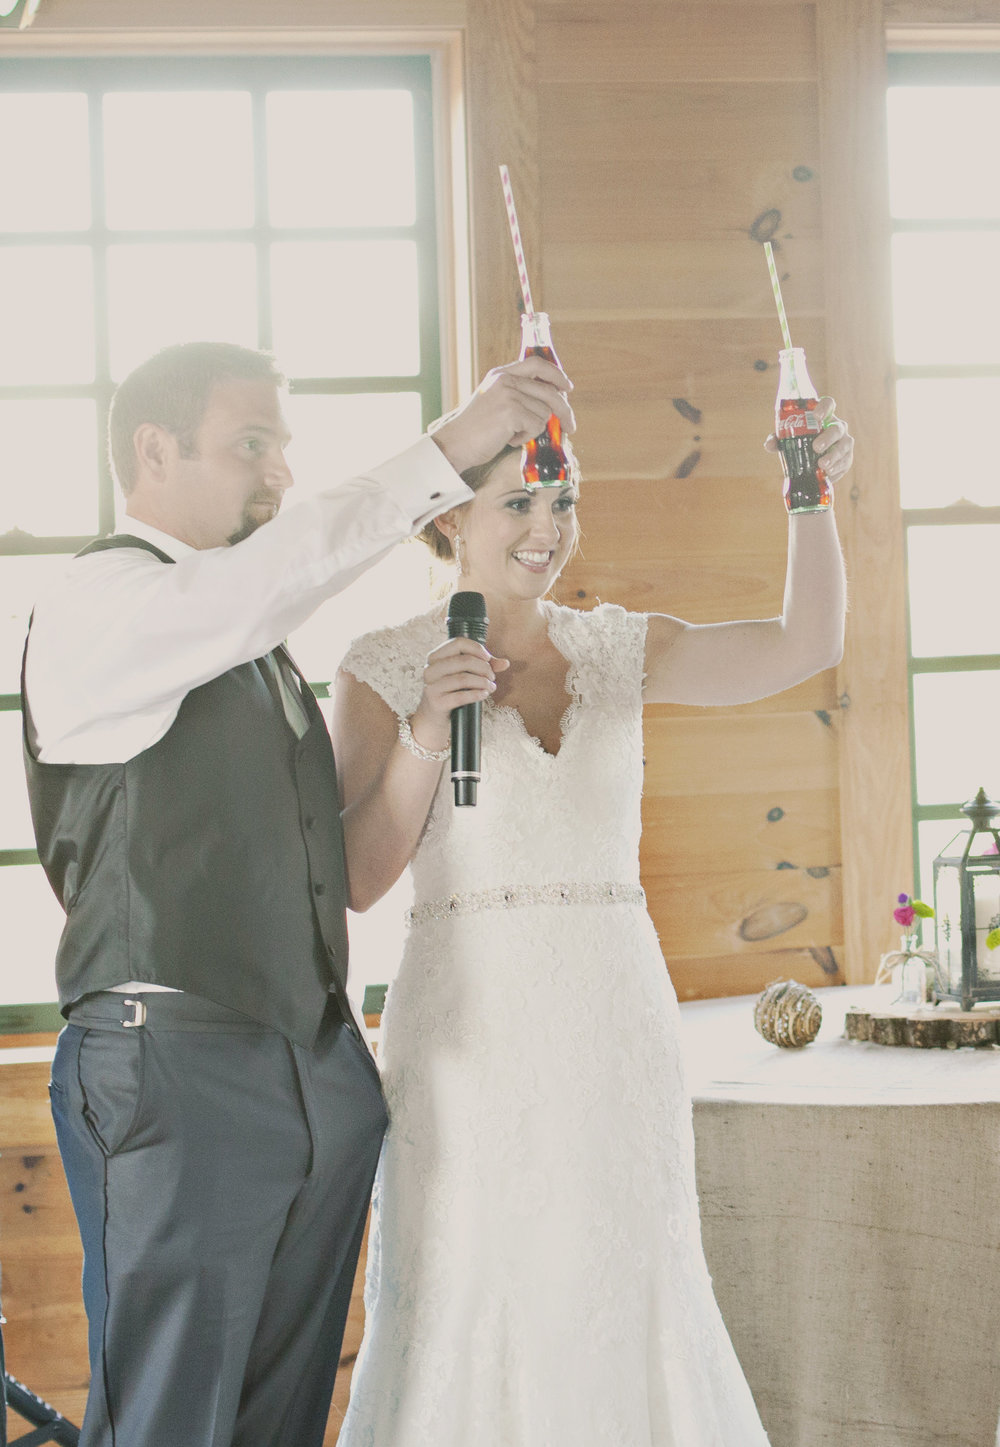 Toast glass bottles of coke instead of champagne for a more casual reception